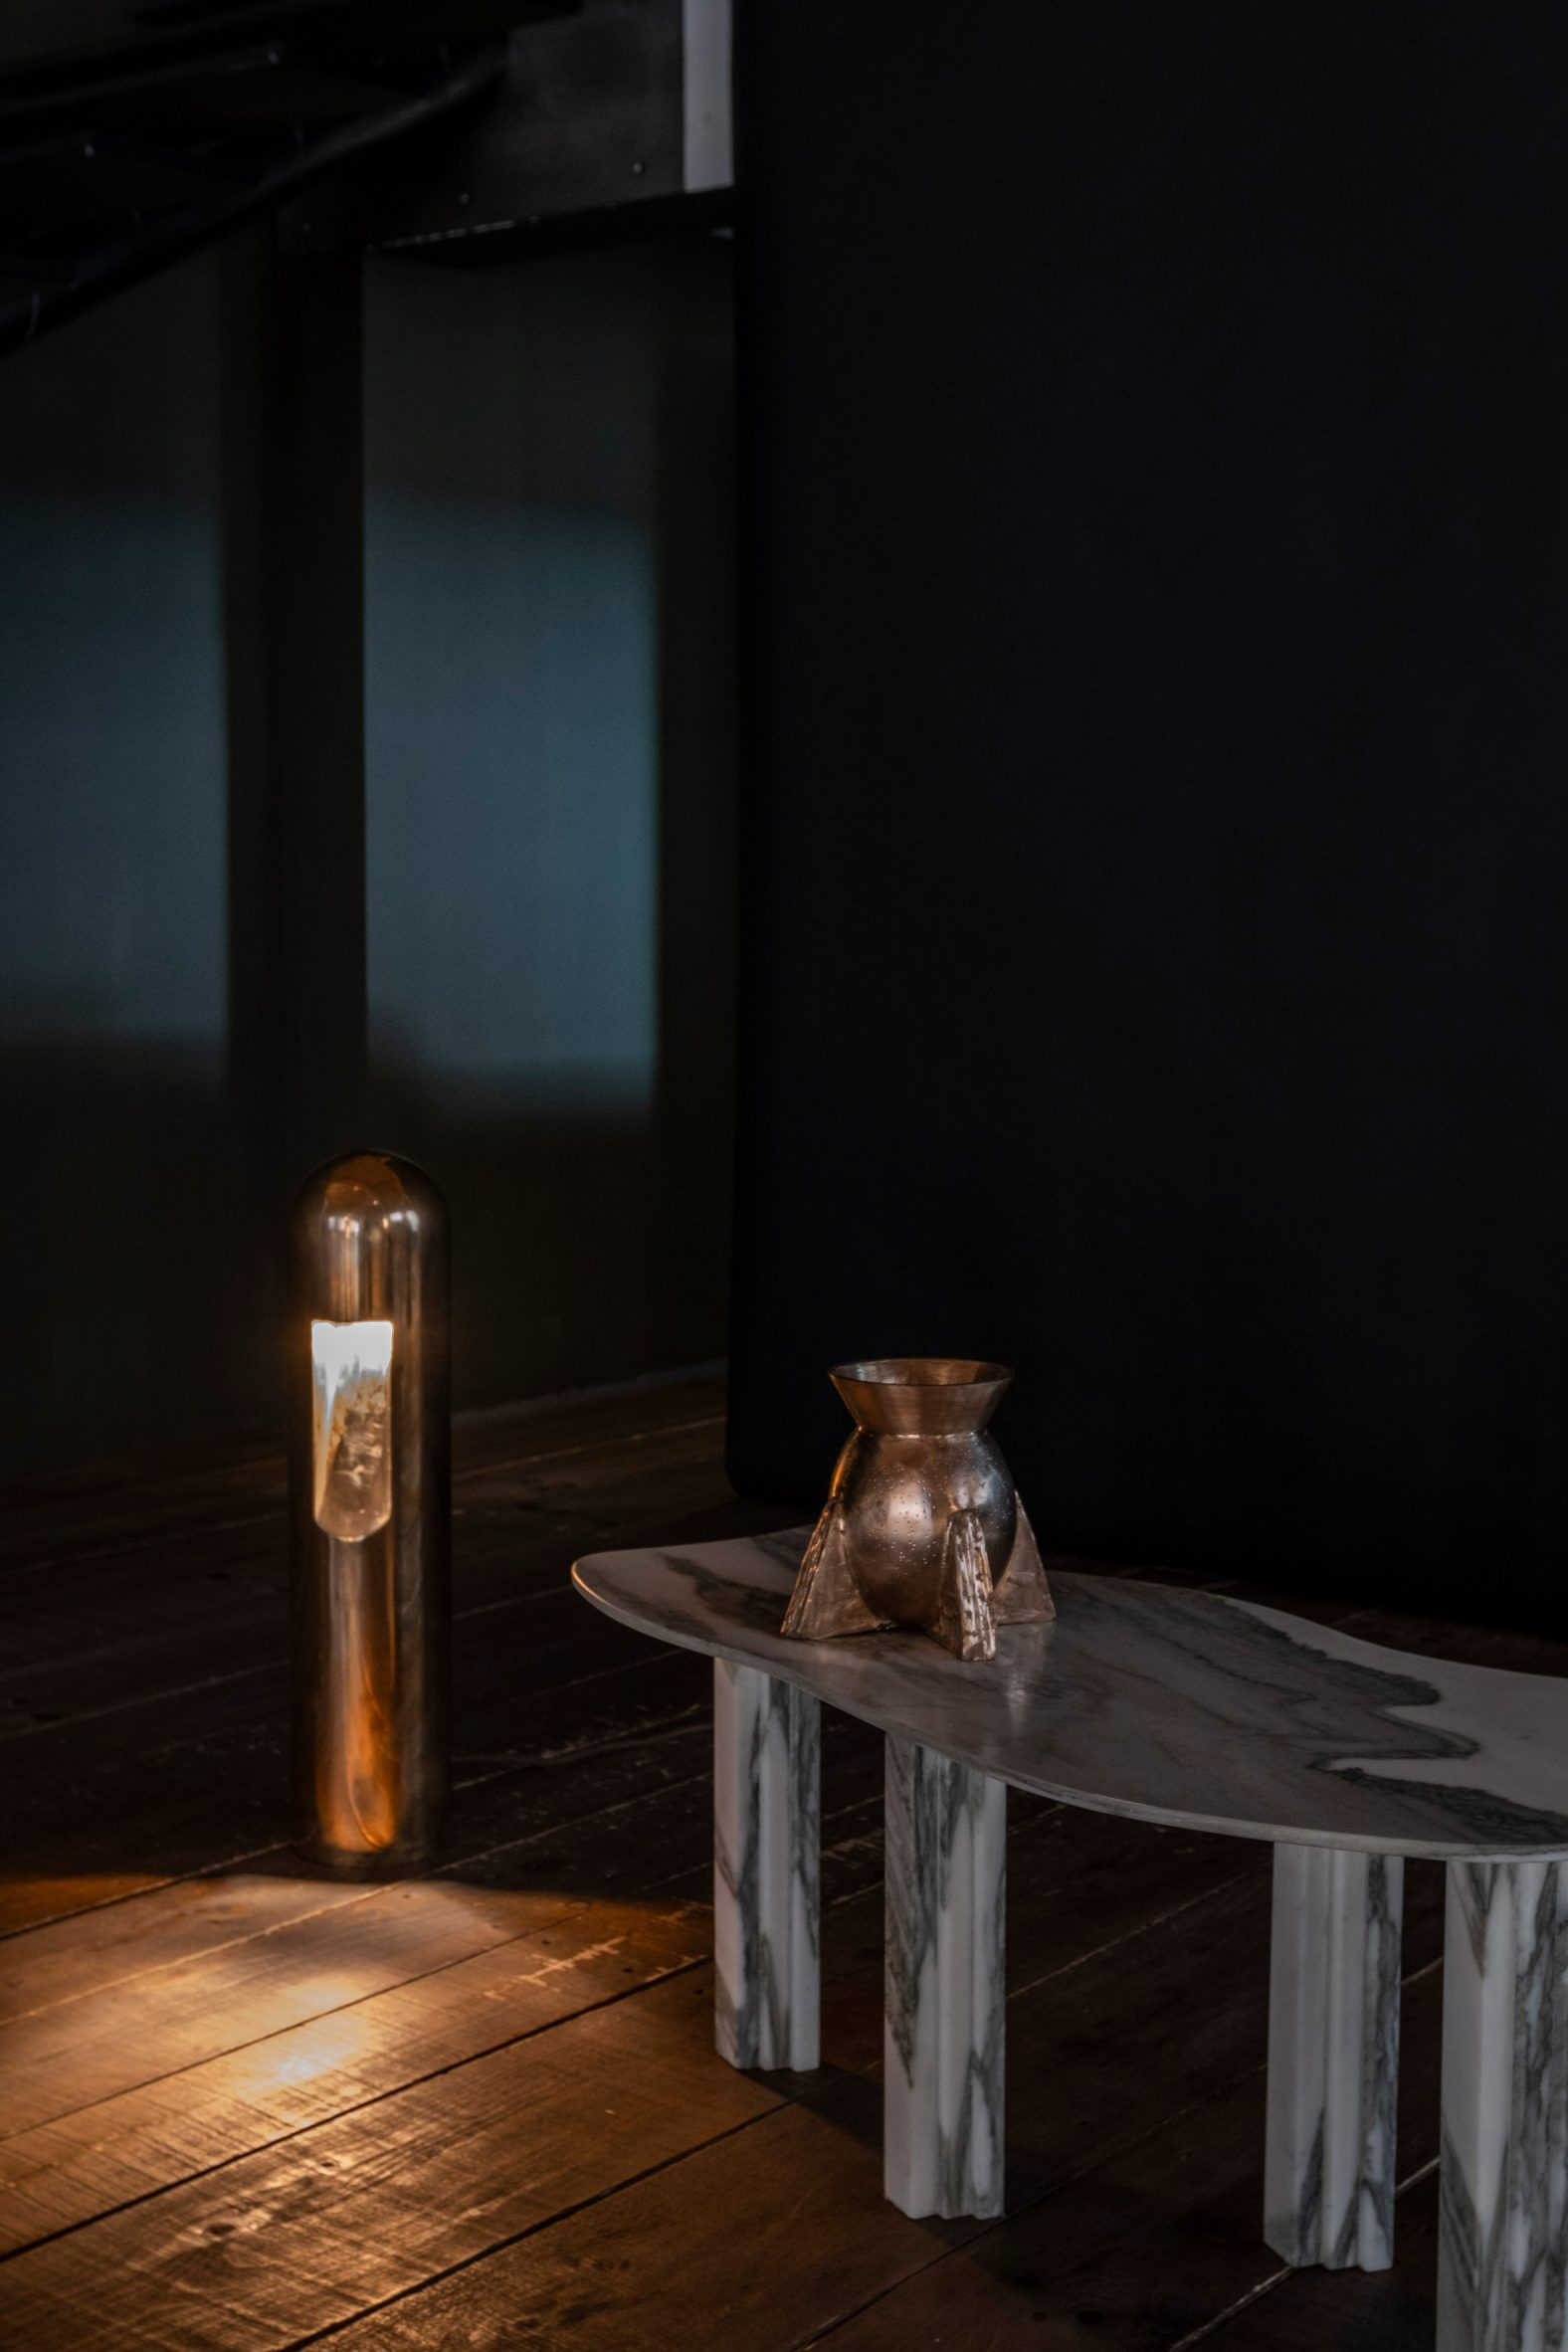 Marble table by Lorenzo Bini with bronze lamp and vessle by Rick Owens